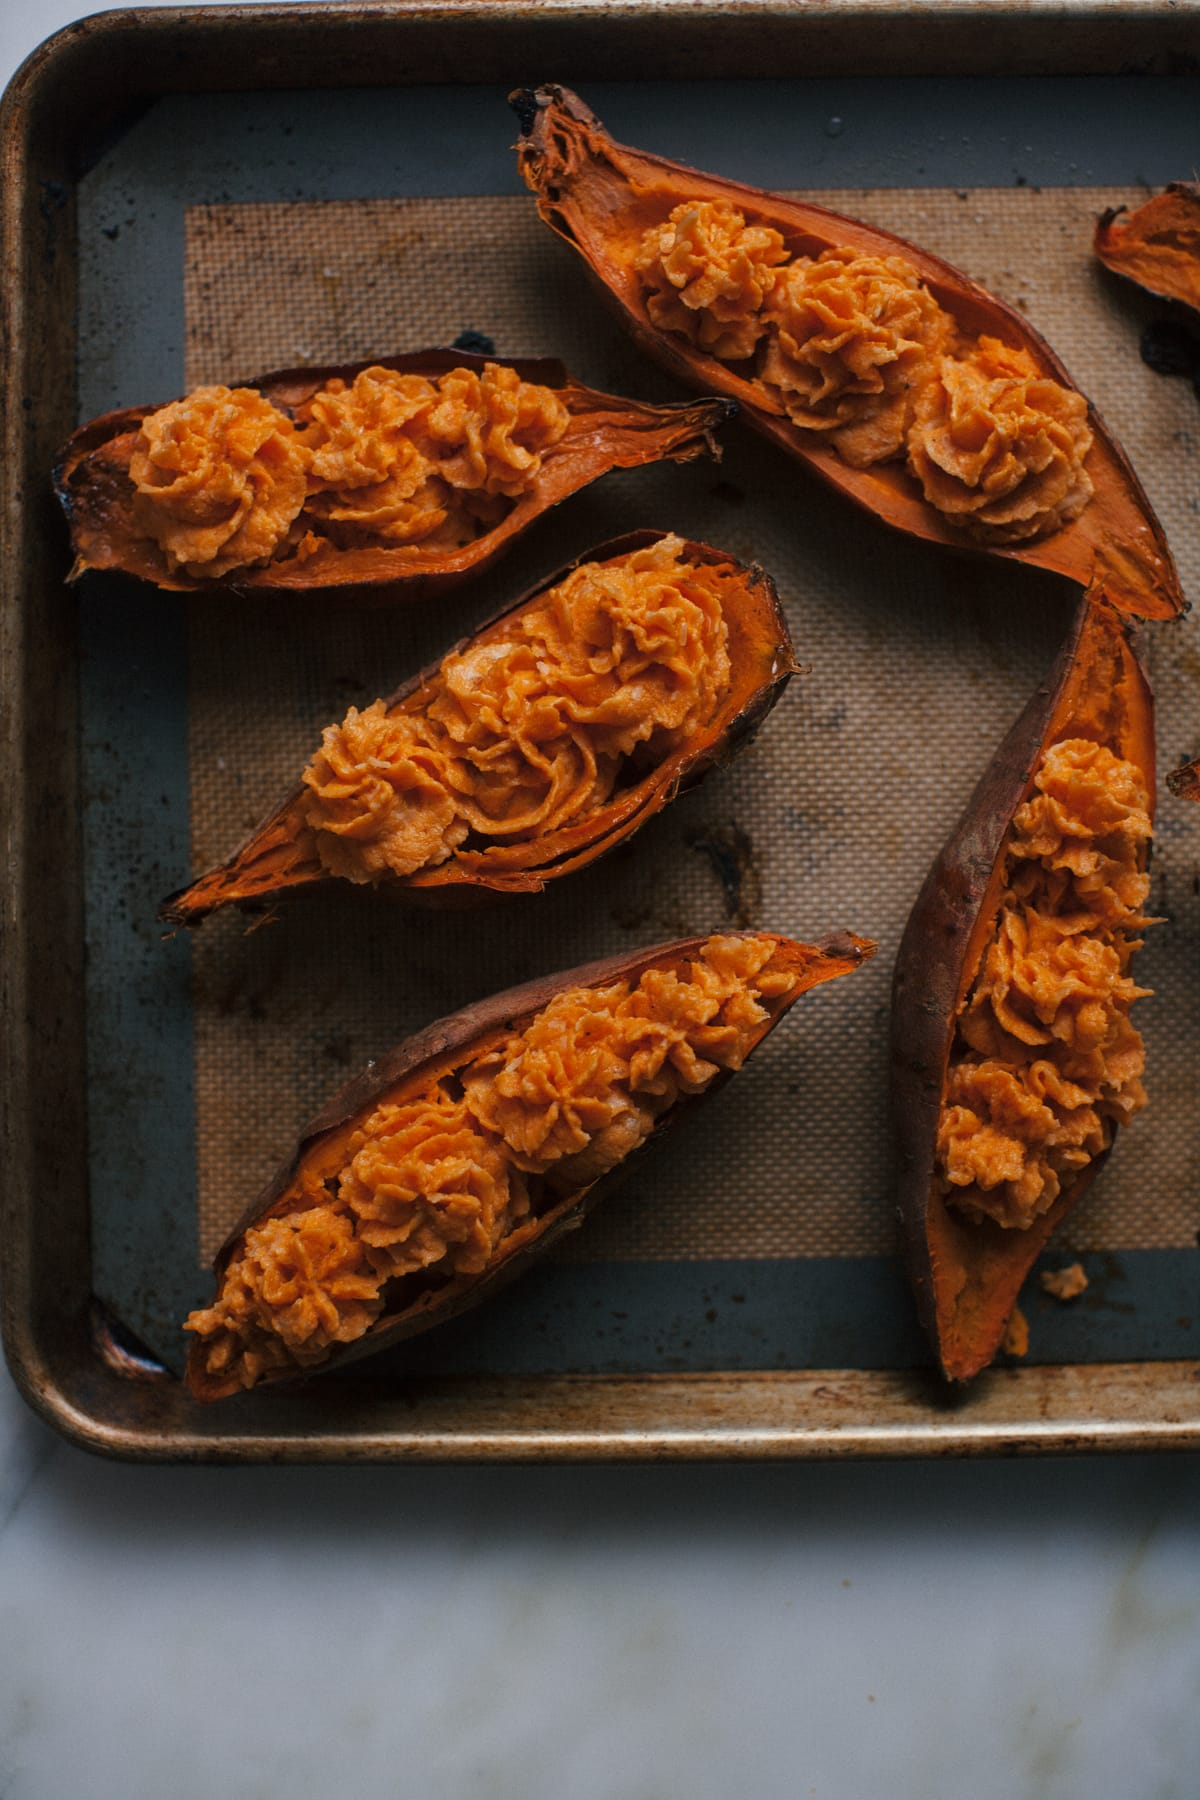 Double Baked Sweet Potato with Caramelized Onions + Comté + Rosemary Butter